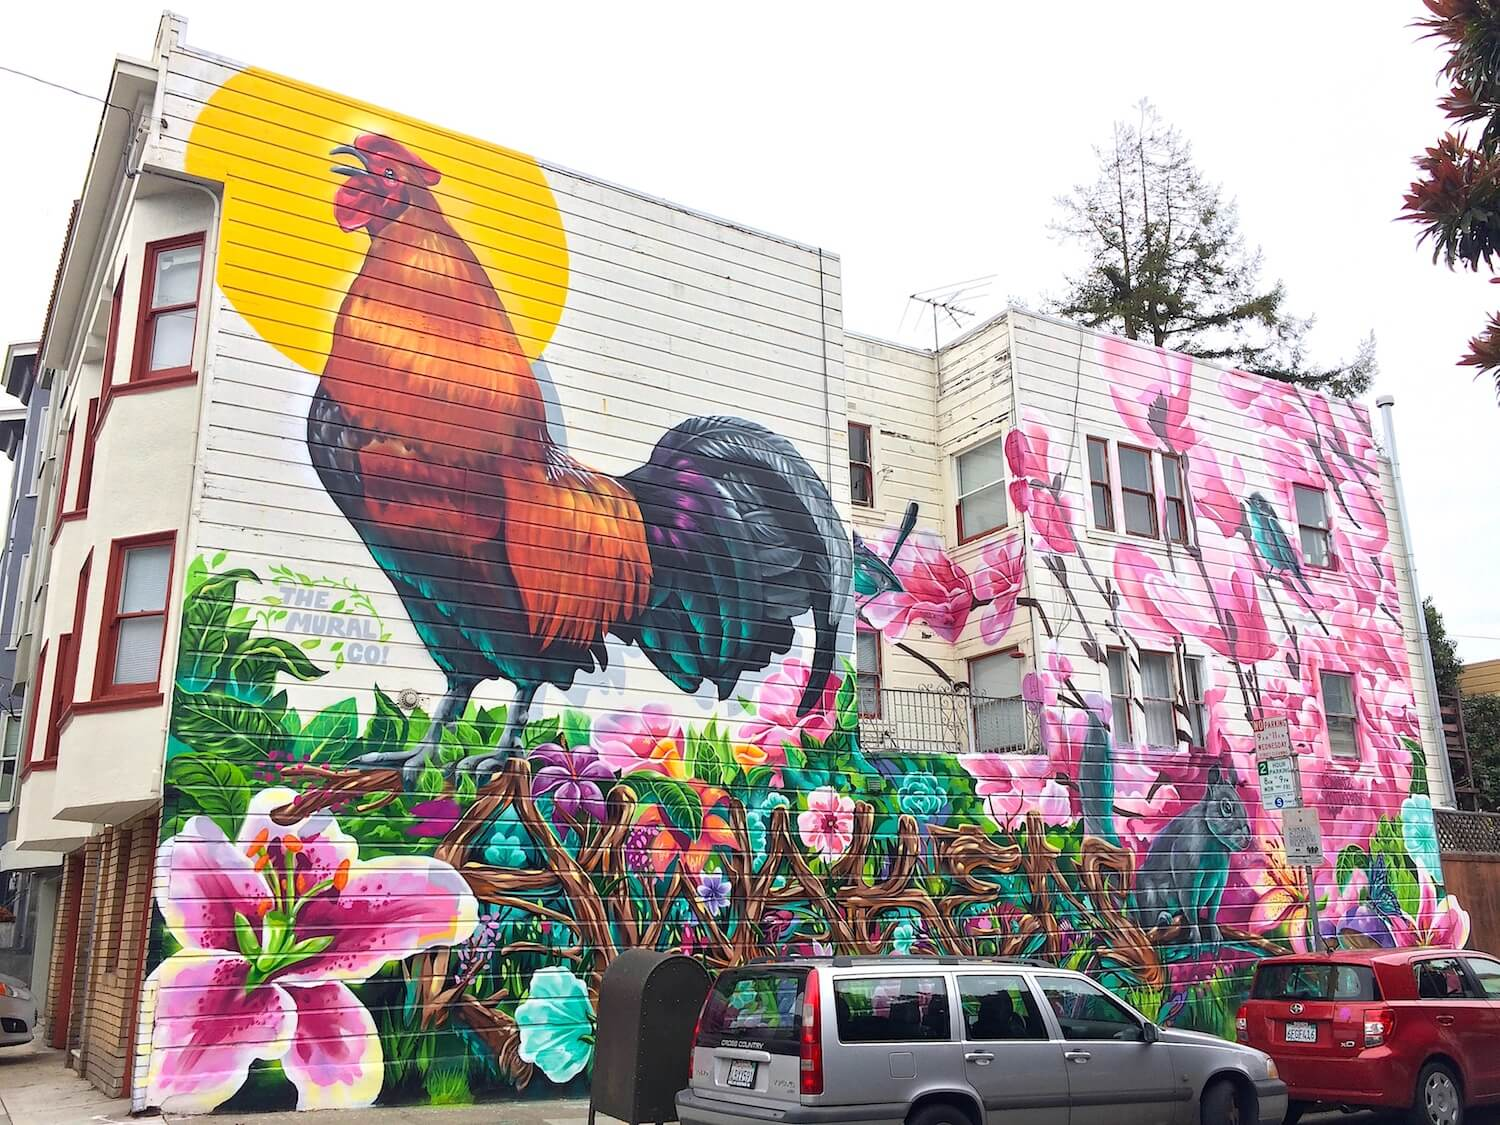 Commissioned Exterior Mural 3 for Gordon Property Management | San Francisco USA, 2017